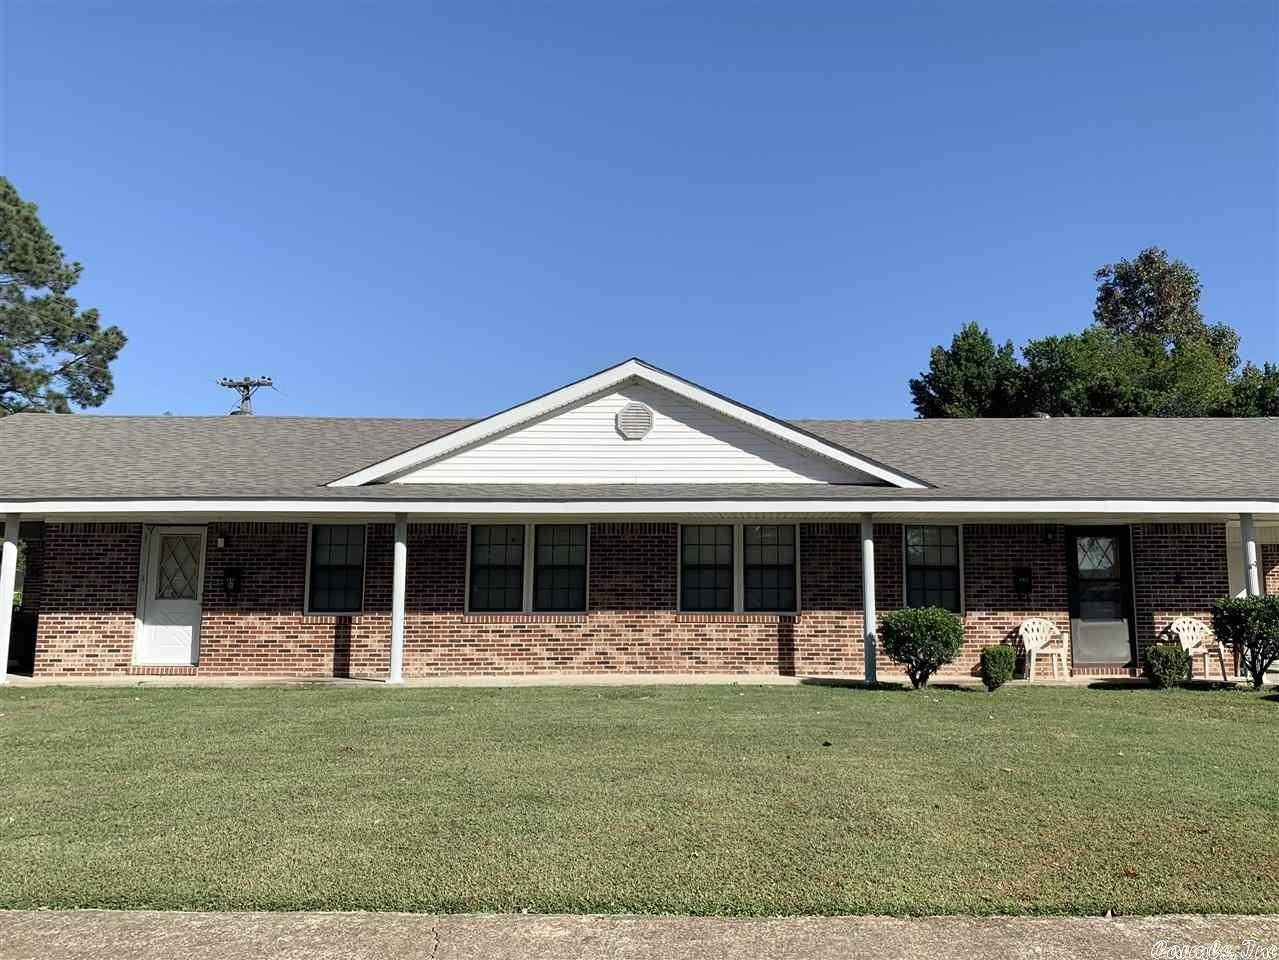 Multi-Family Homes for Sale at 902 Garden Lane Osceola, Arkansas 72370 United States